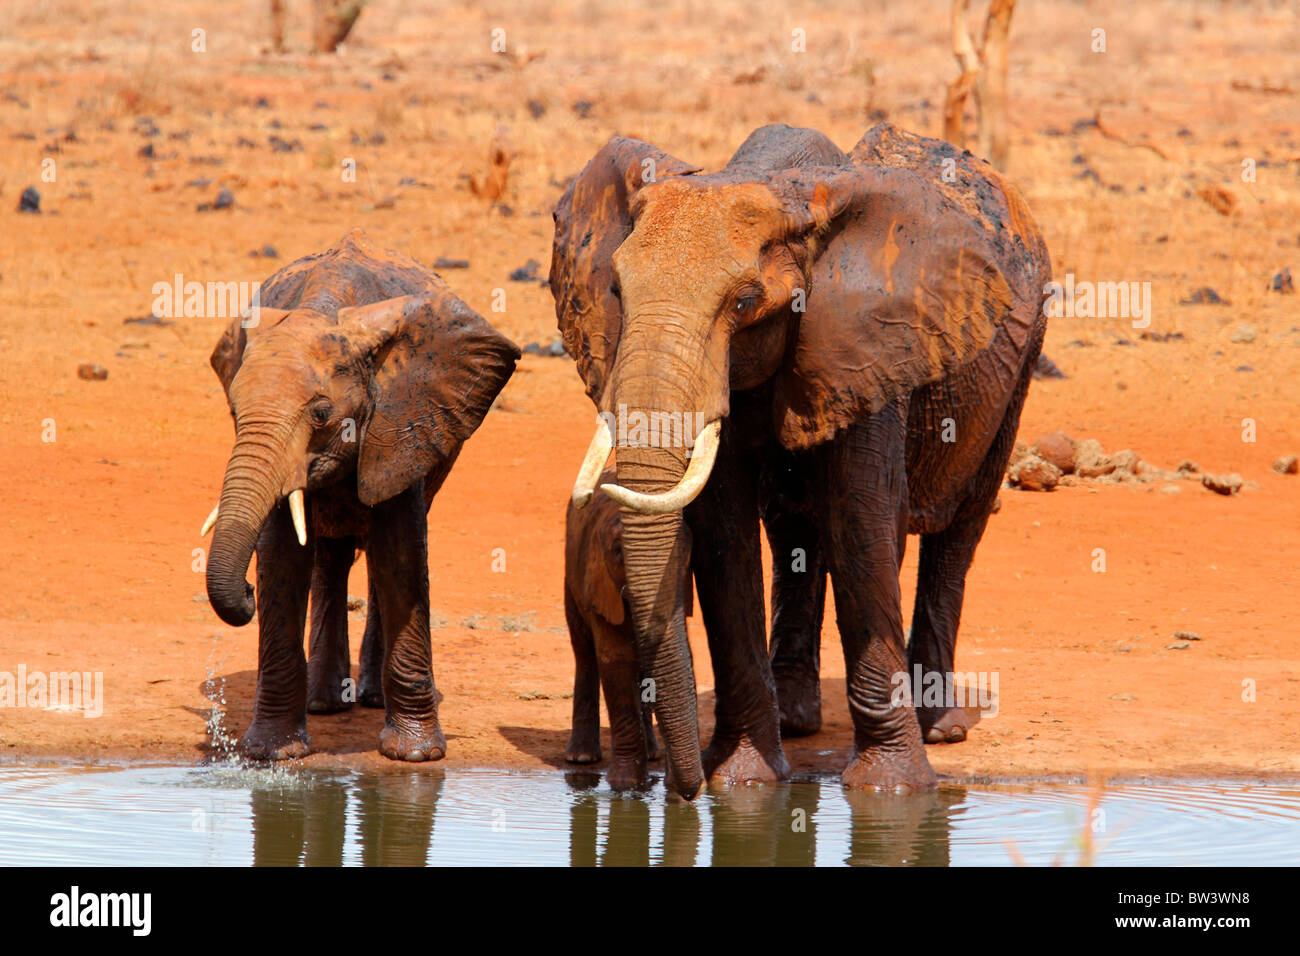 Family of elephants drinking at a pool - Stock Image